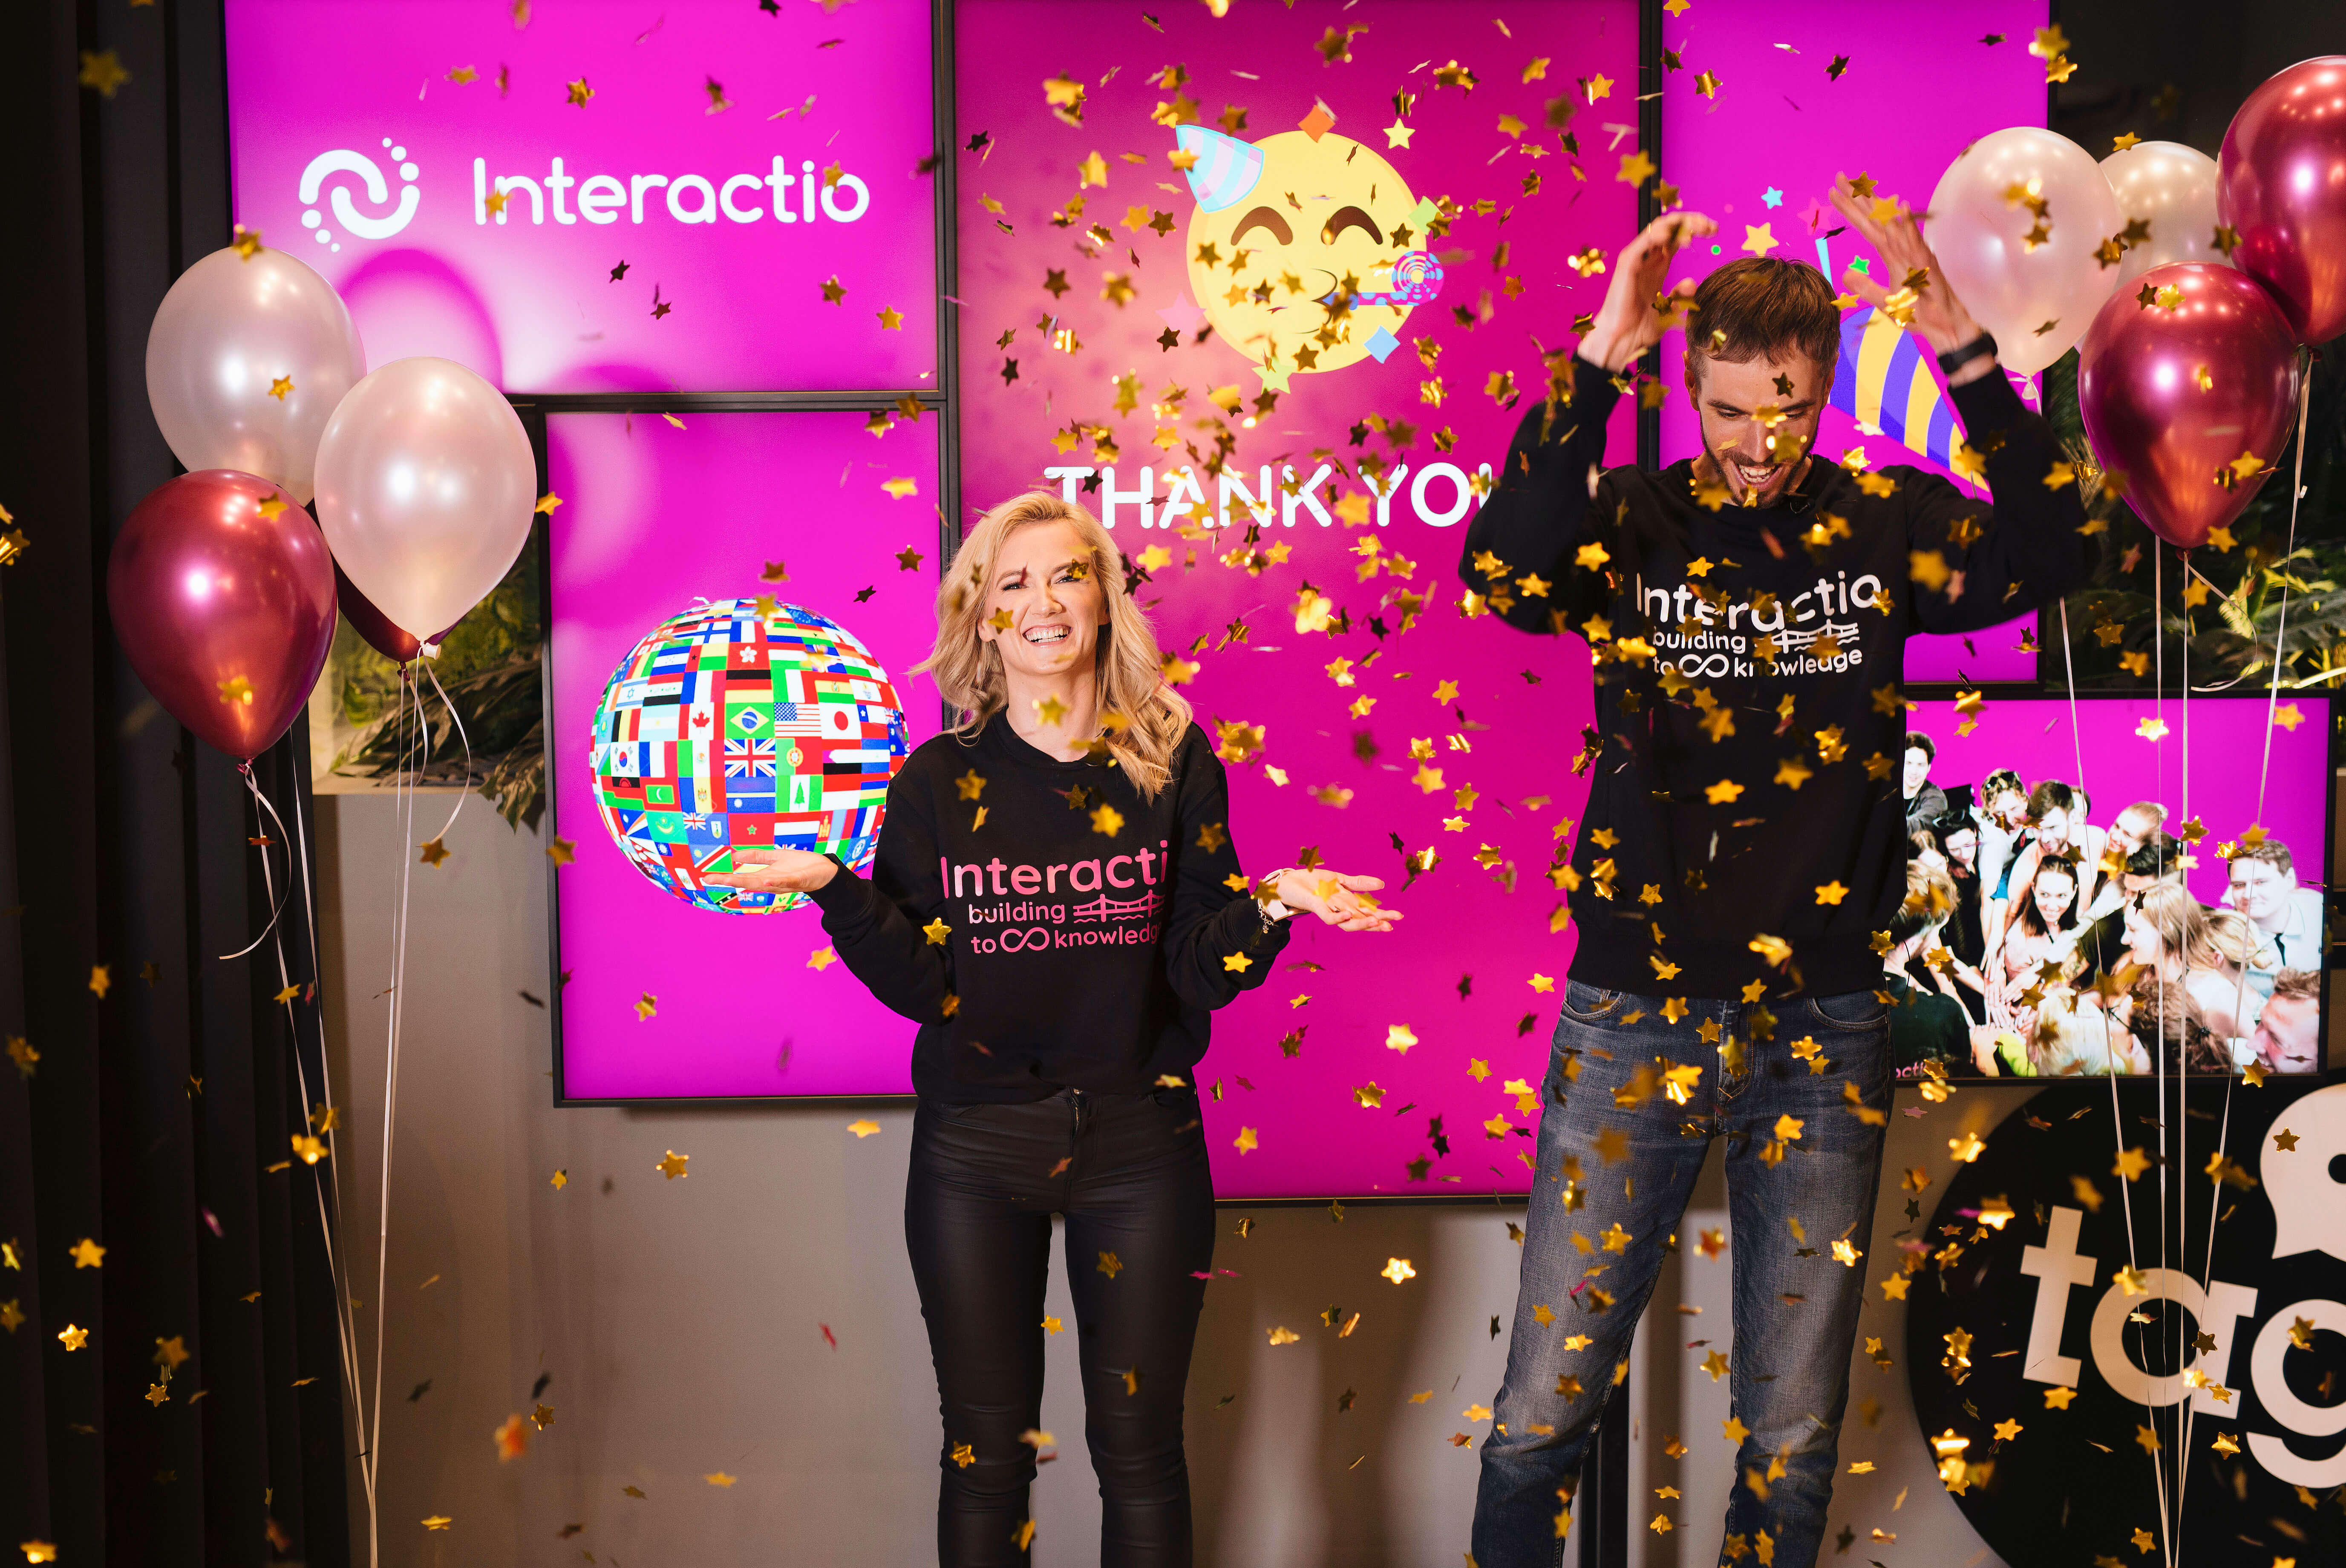 We raised $30M in Series A! Interactio's Learnt Lessons Beyond Numbers